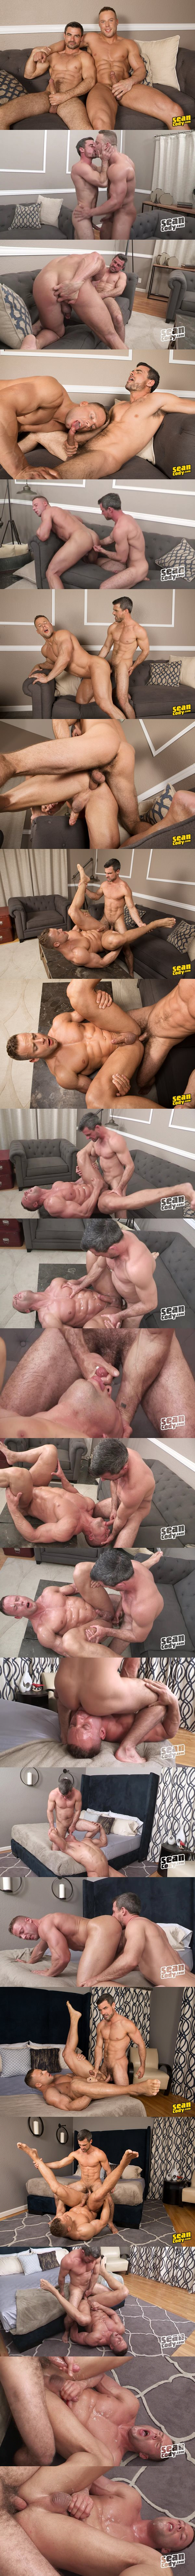 Daniel barebacks and breeds big muscle hunk Jack at Seancody 02